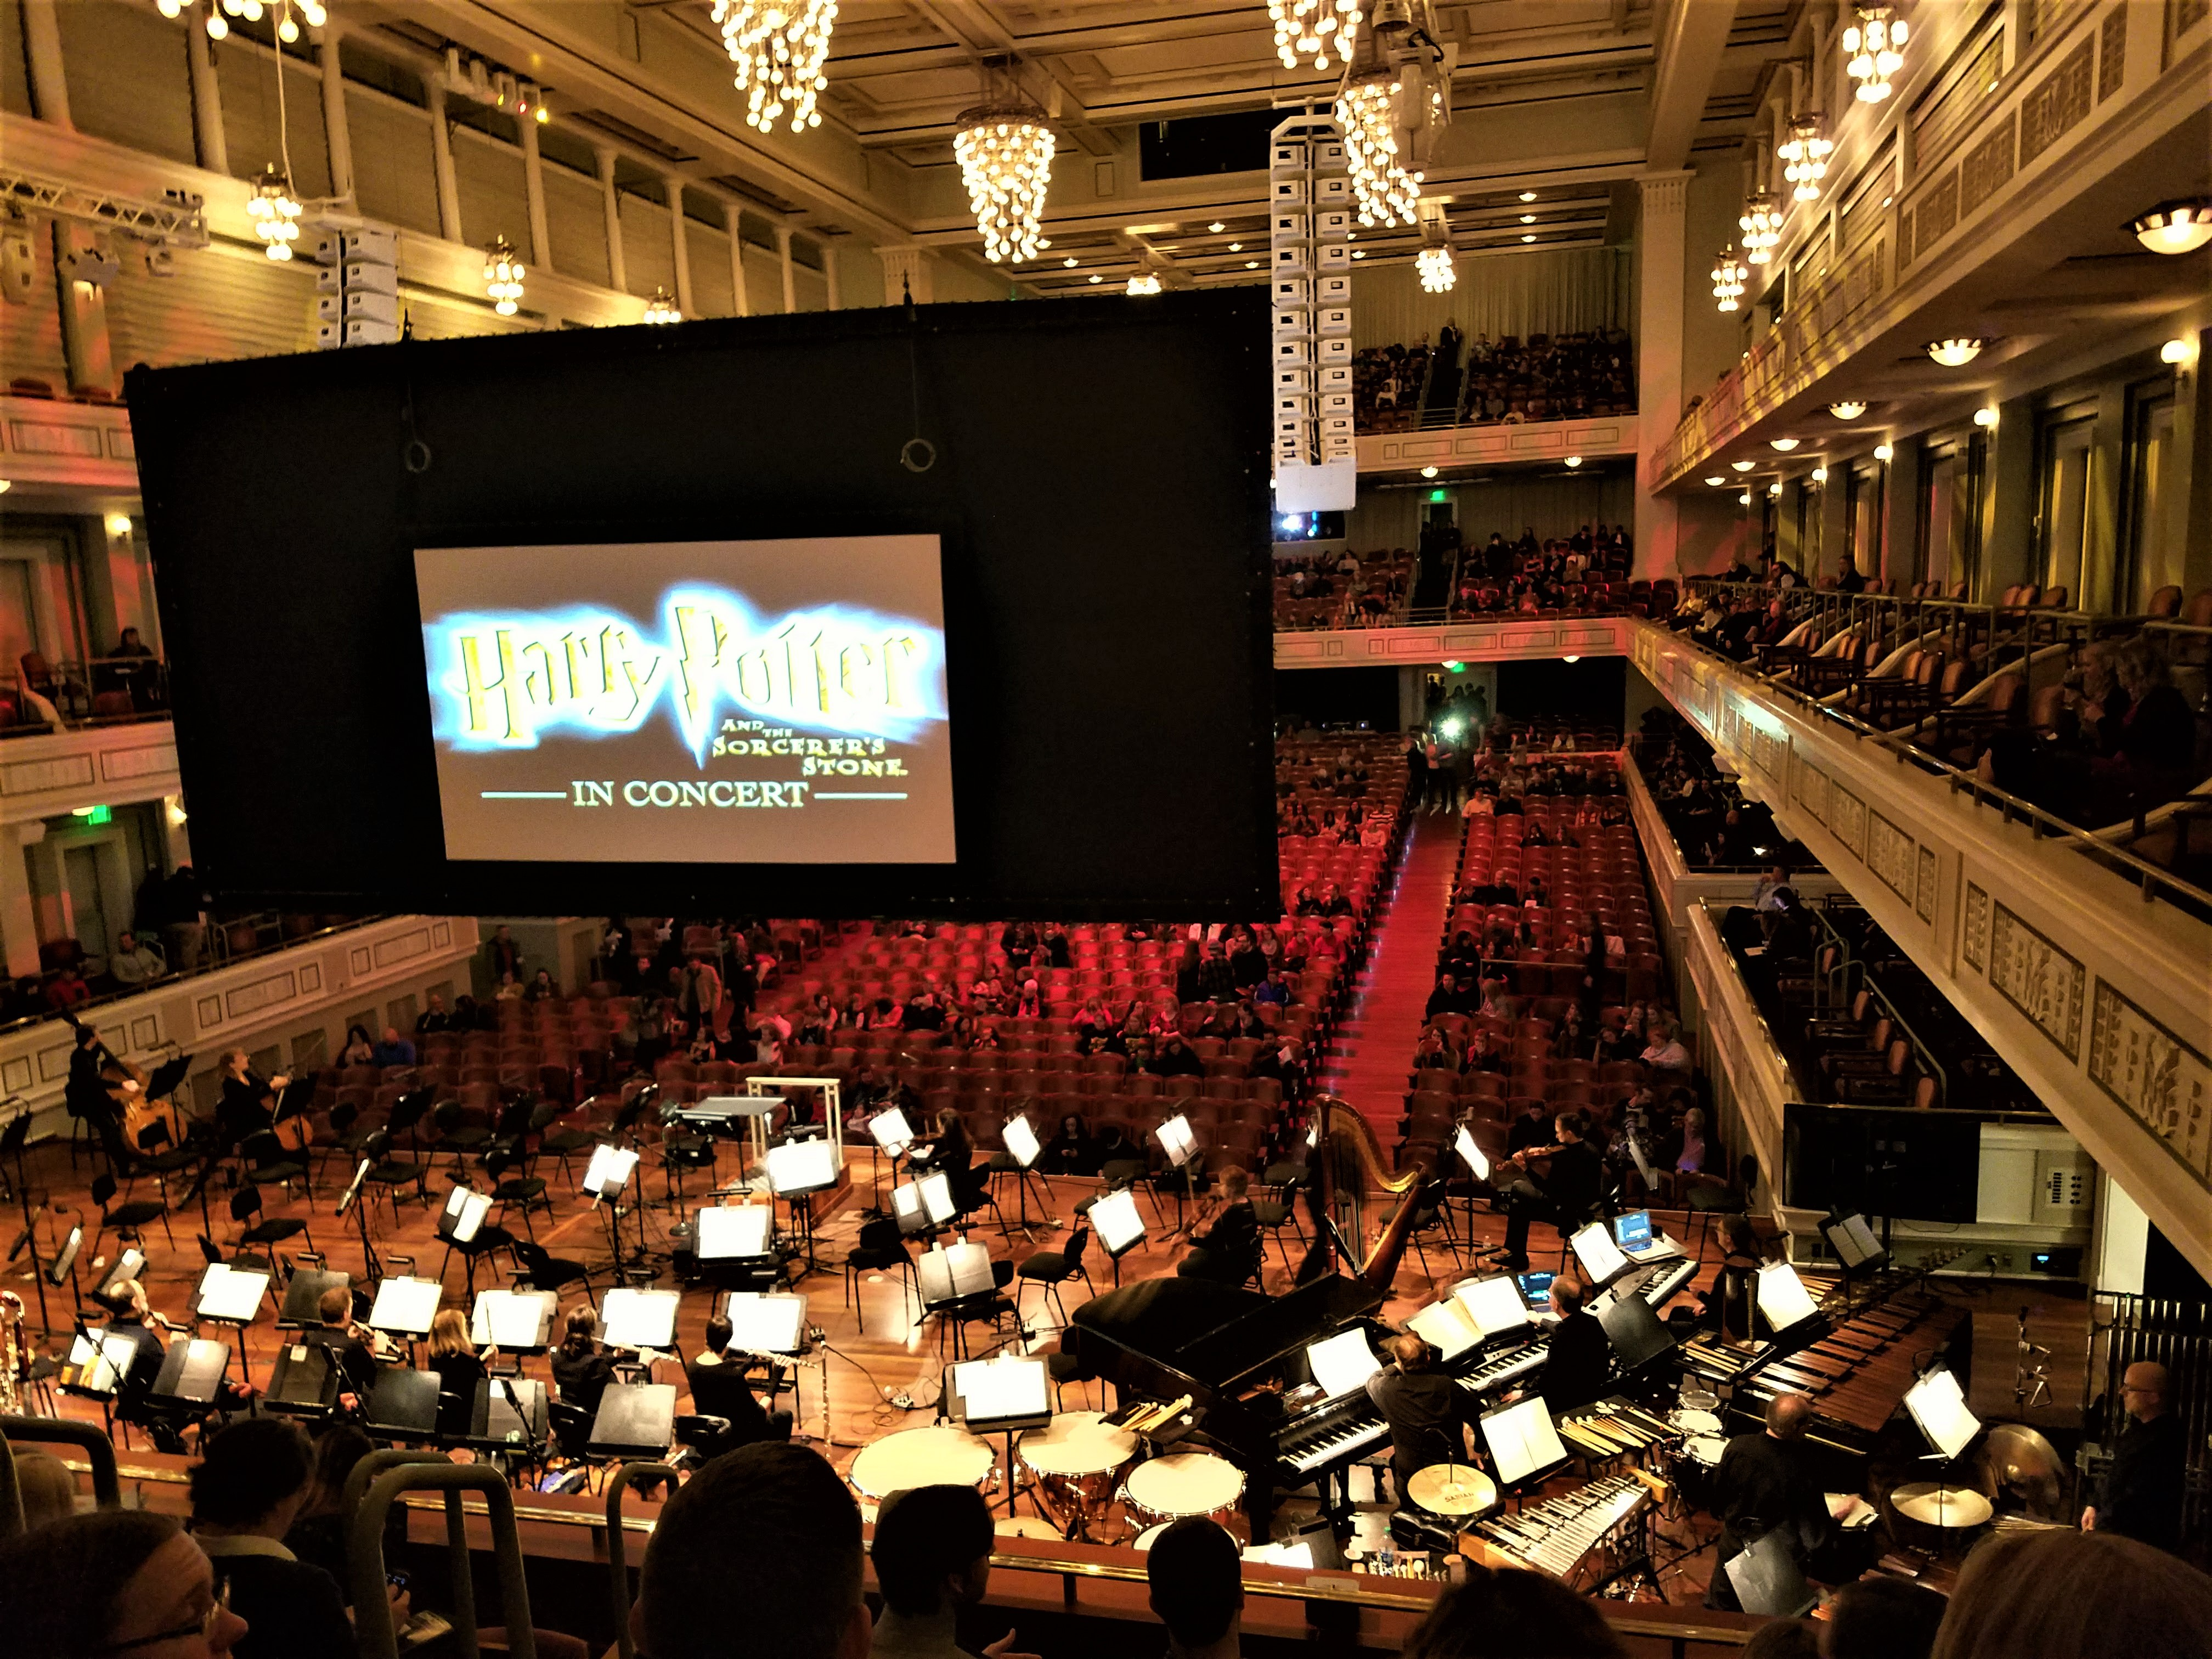 Harry Potter and the Sorcerer's Stone in Concert with the Nashville Symphony